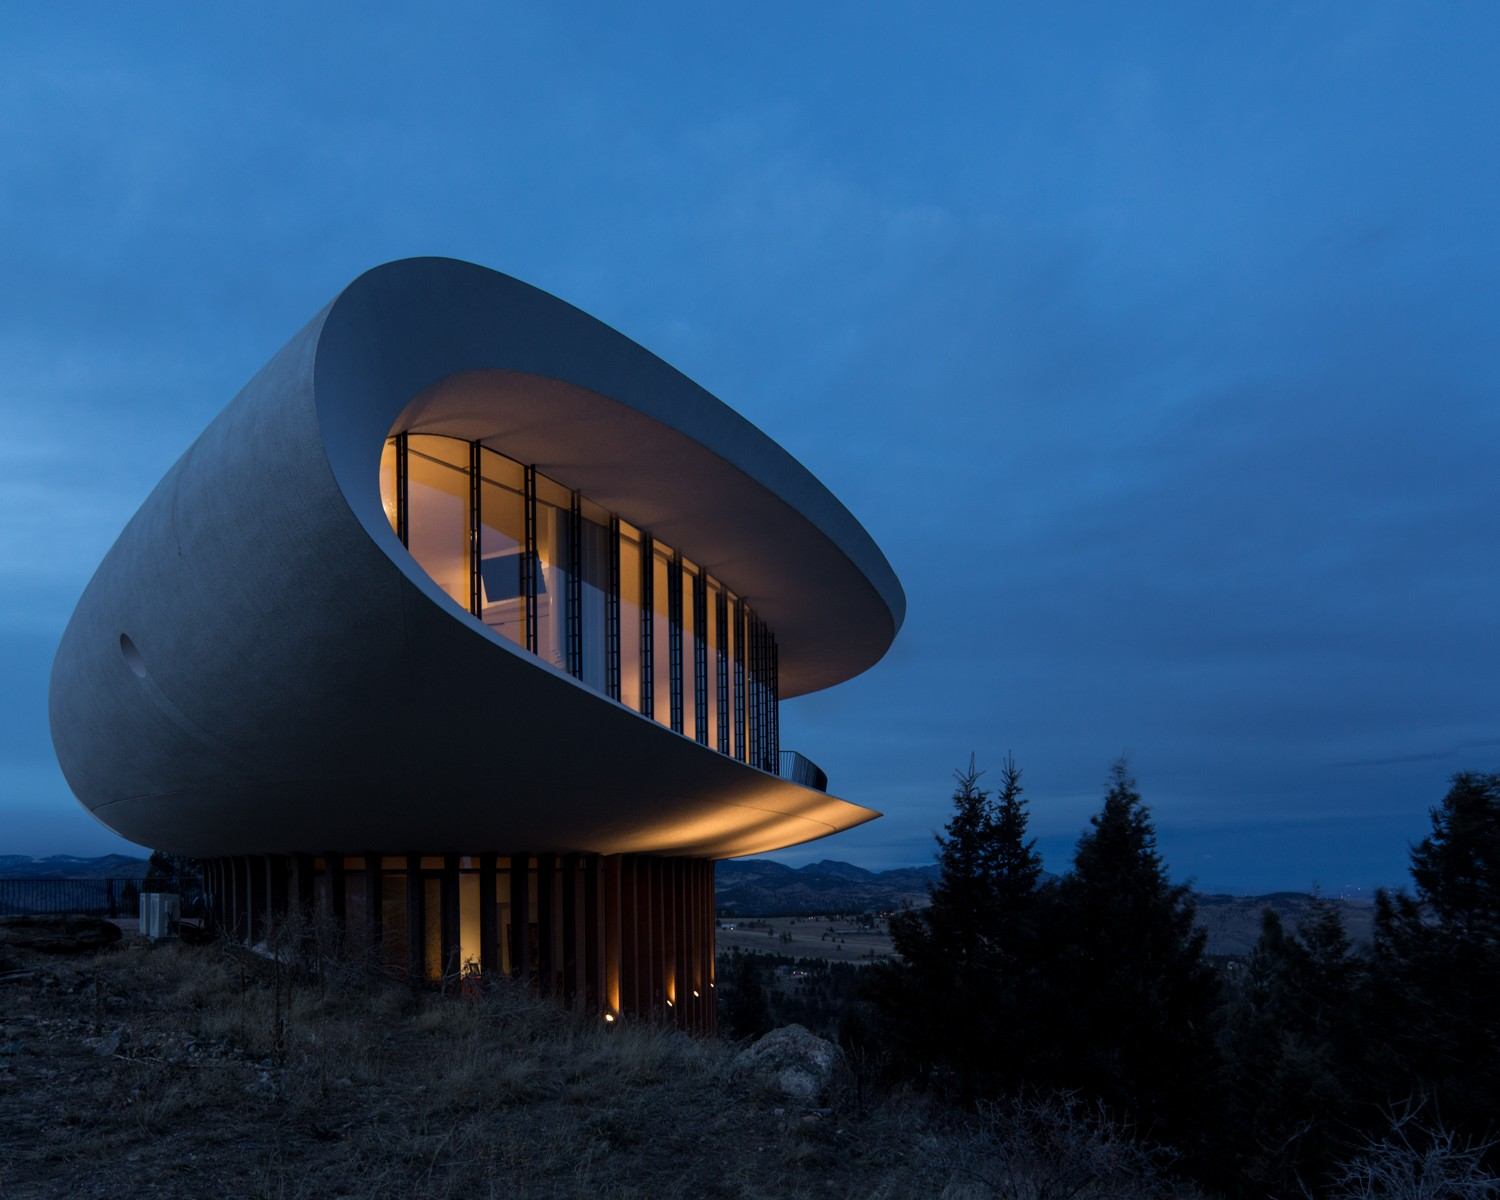 Sculptured House at Night